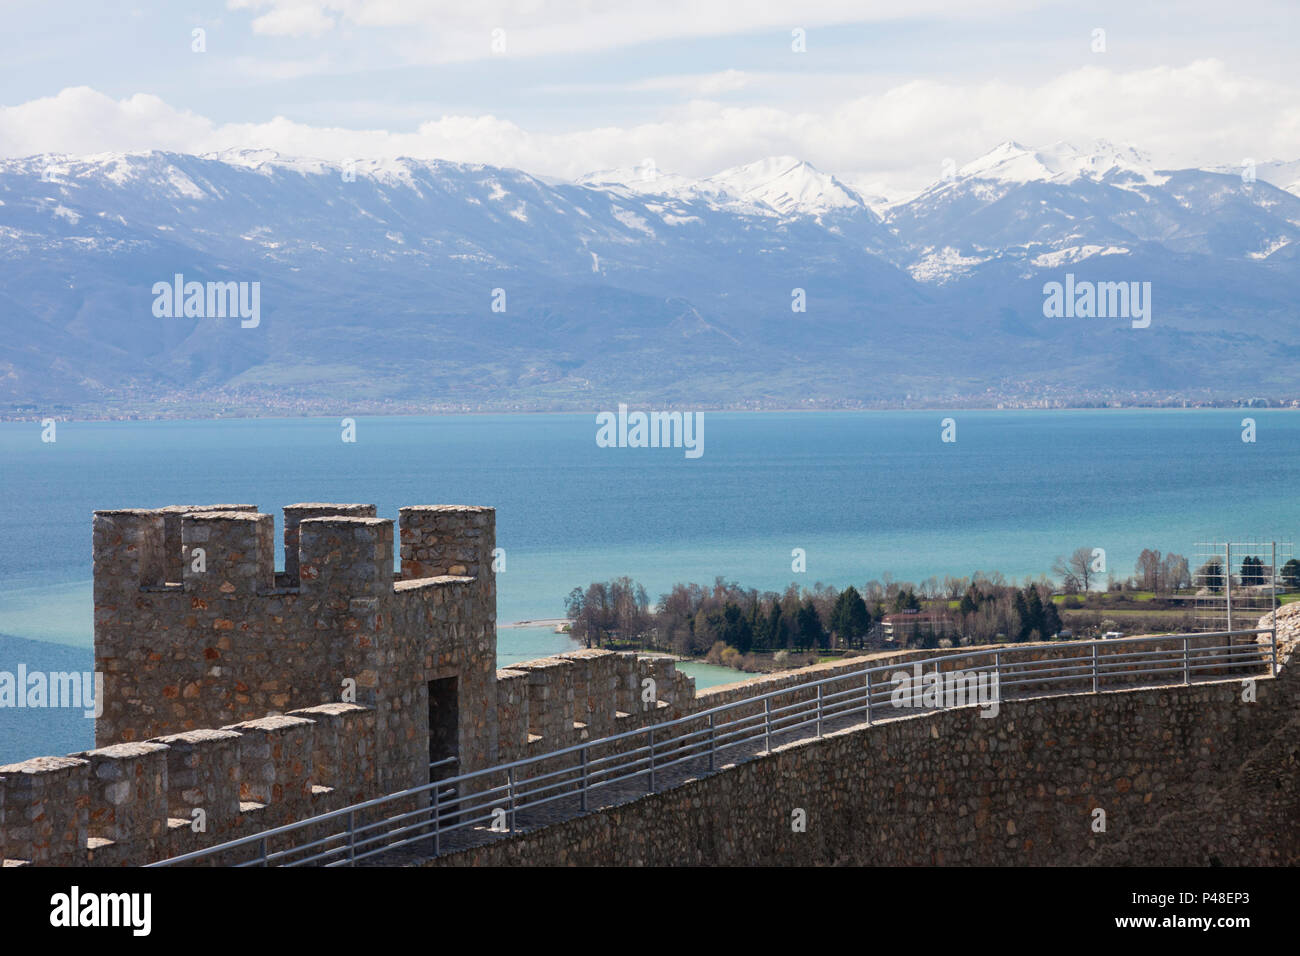 Ohrid, Republic of Macedonia : Landscape with snowcapped mountains and Ohrid lake with Samuel's Fortress in foreground. Built on the site of an earlie - Stock Image